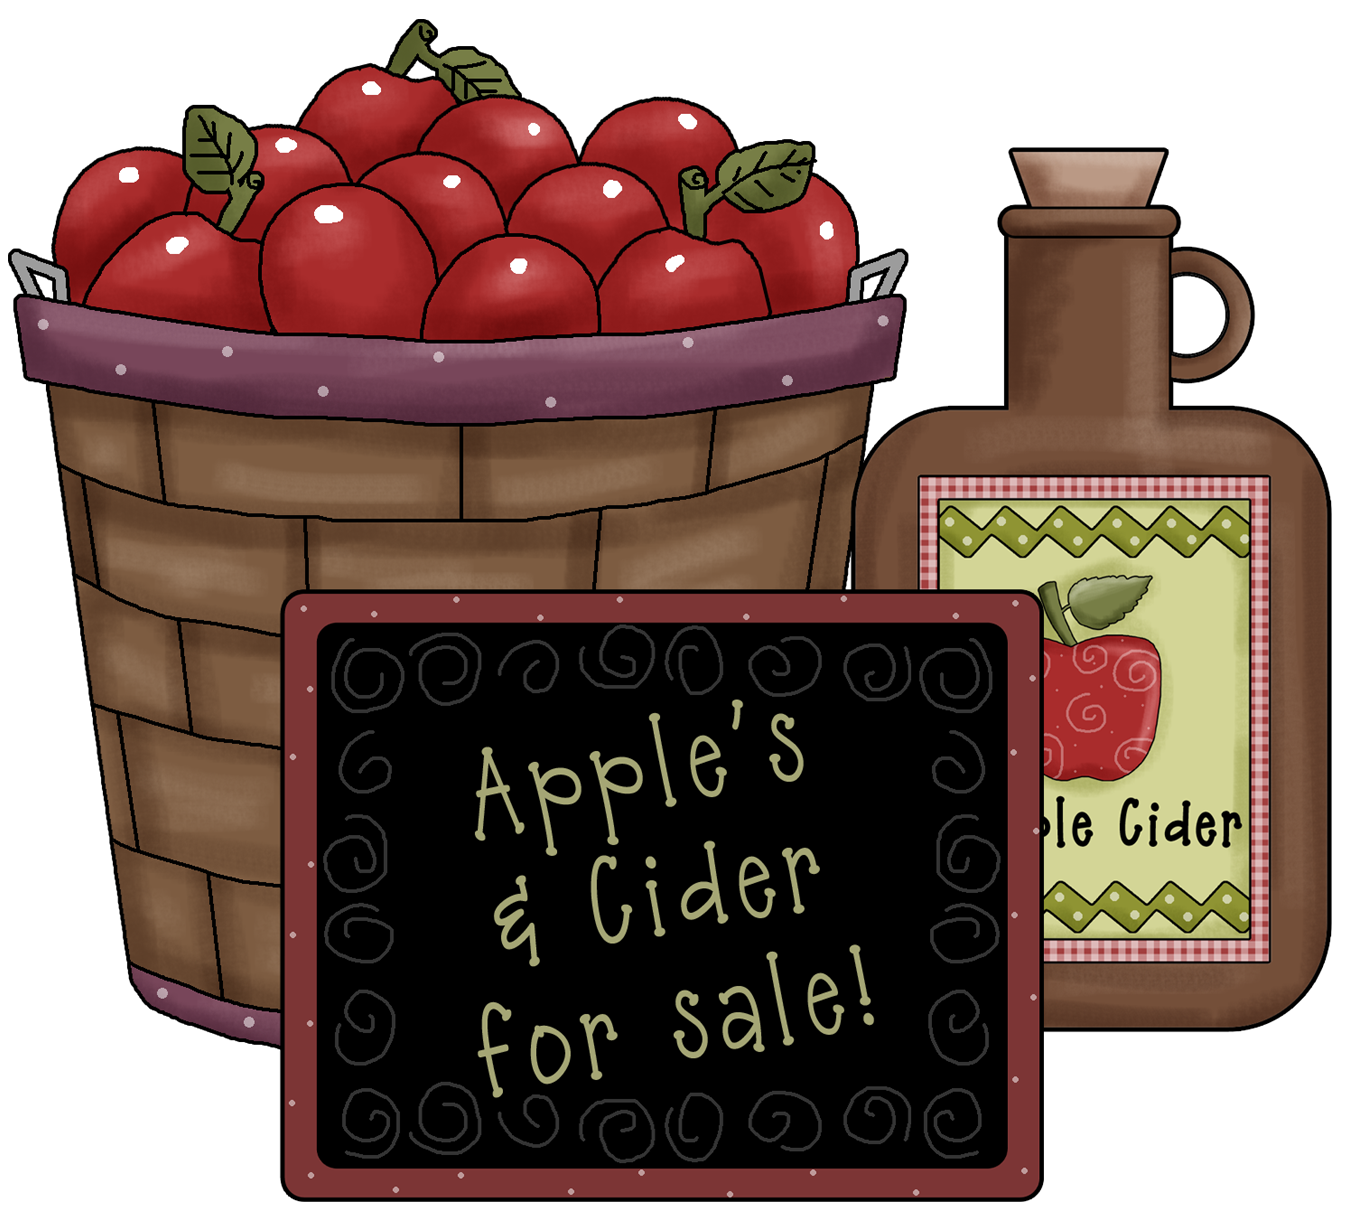 Free hot apple cider clipart clip art library download So American Folk Art......... |